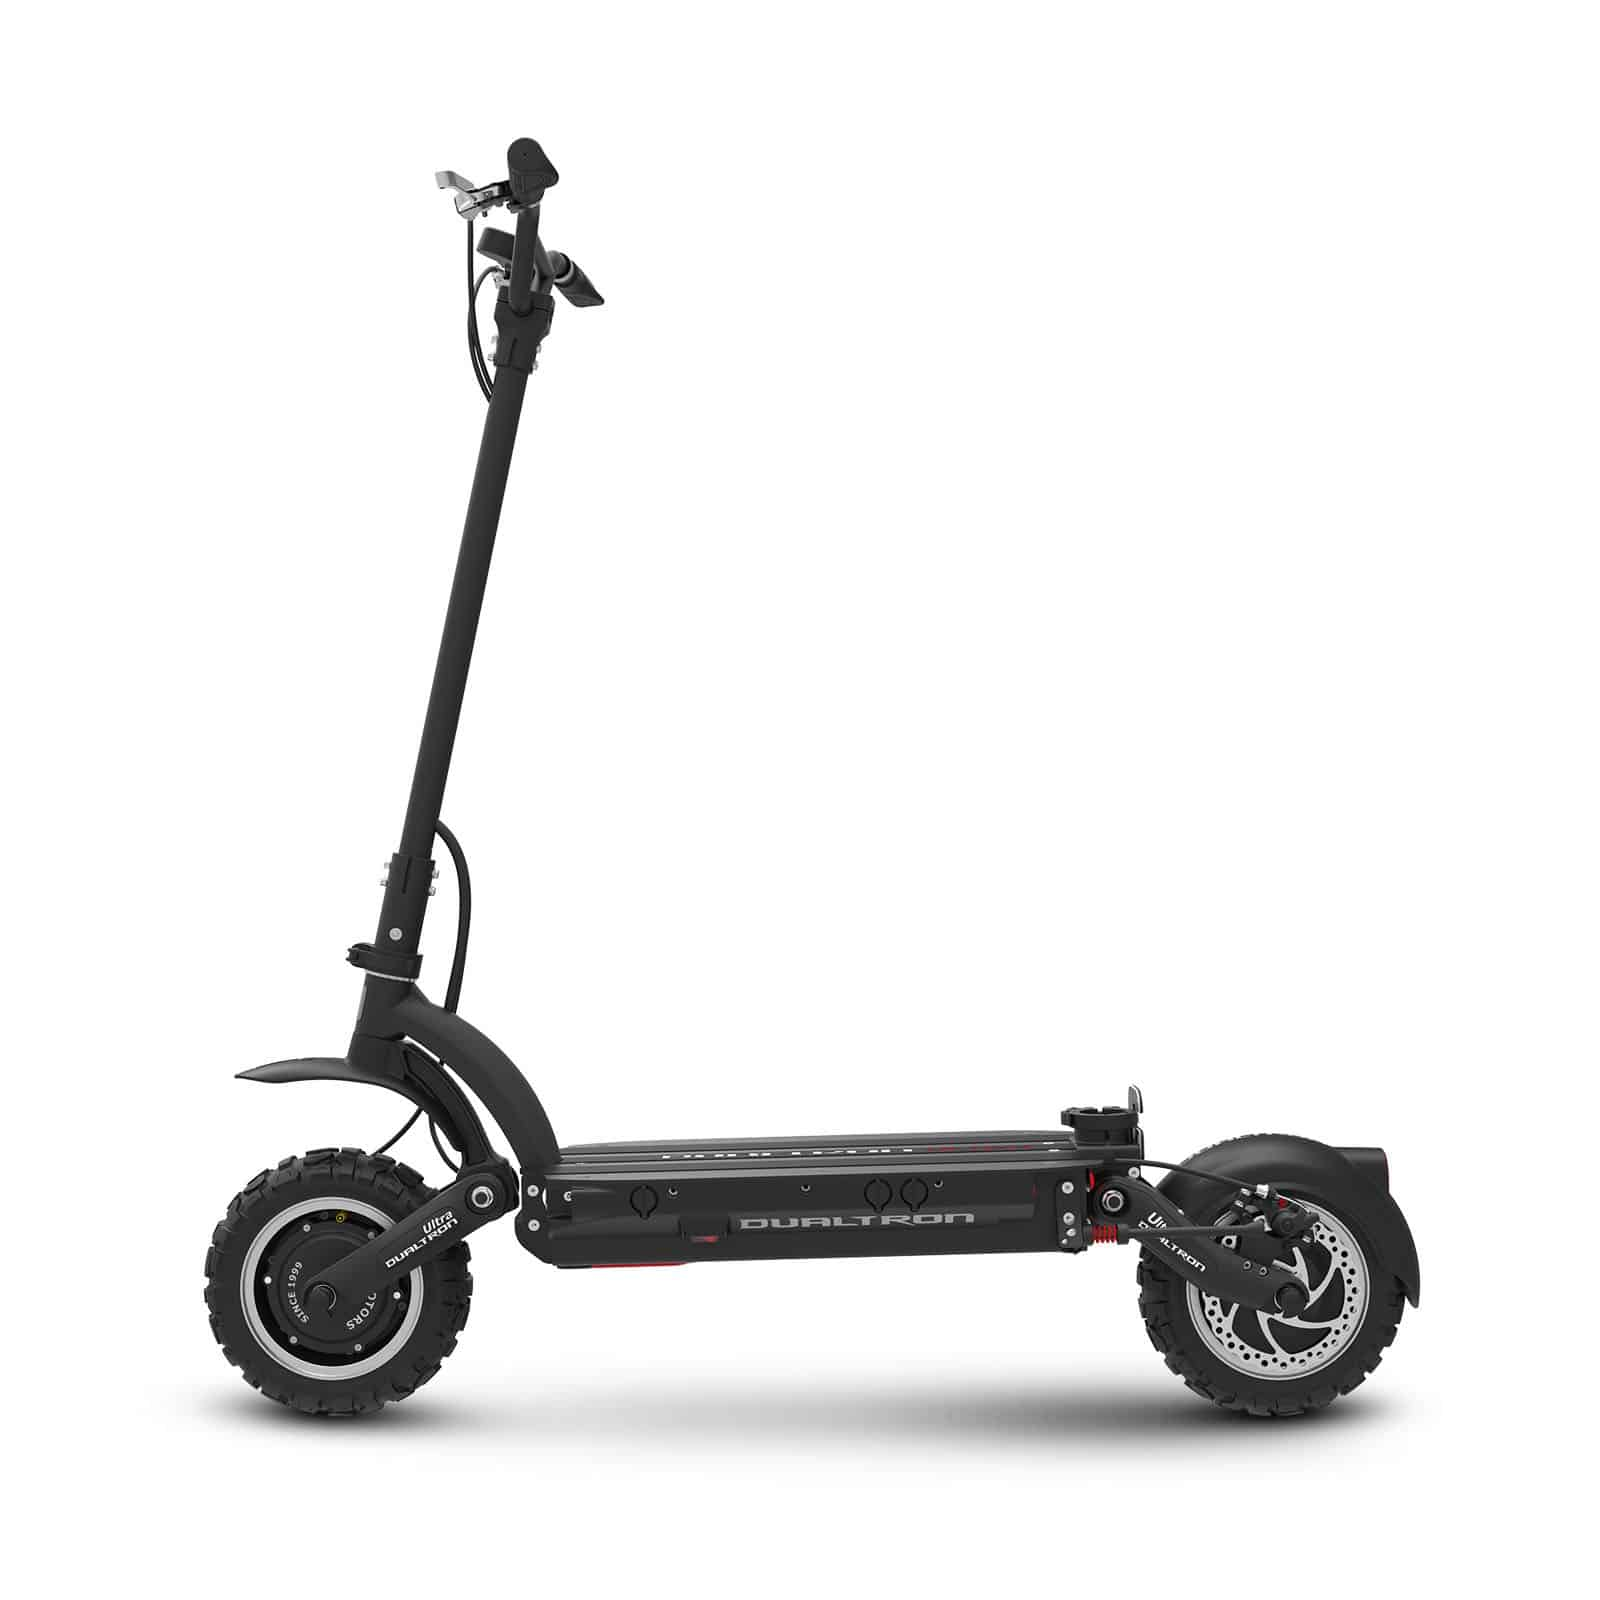 Best Long Range Electric Scooters Per Charge in '2021' 2